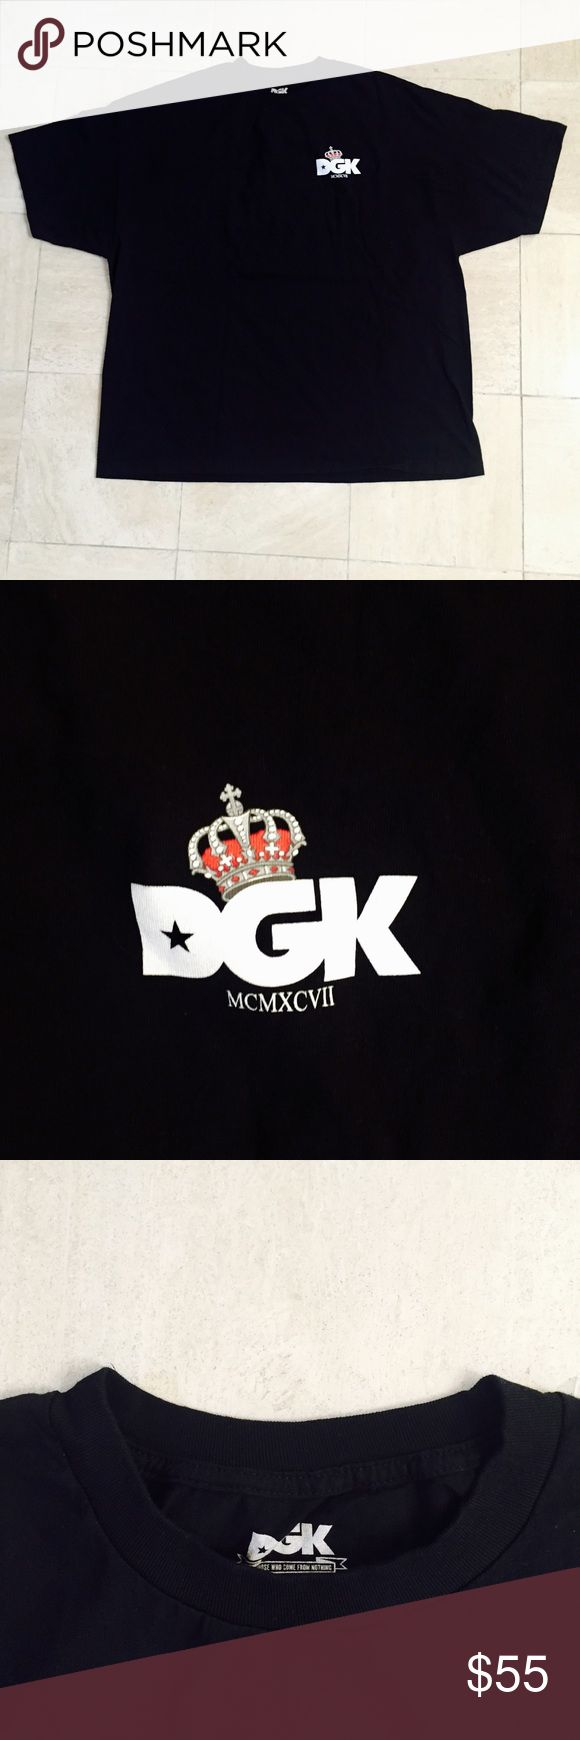 DGK Royalty T-Shirt DGK Royalty T-Shirt: Made from 100% Cotton, tagless collar for comfort, crew neck, screen print chest and back graphic (as pictured), imported, original product, exactly as pictured, fits true to size, and never worn. DGK Shirts Tees - Short Sleeve